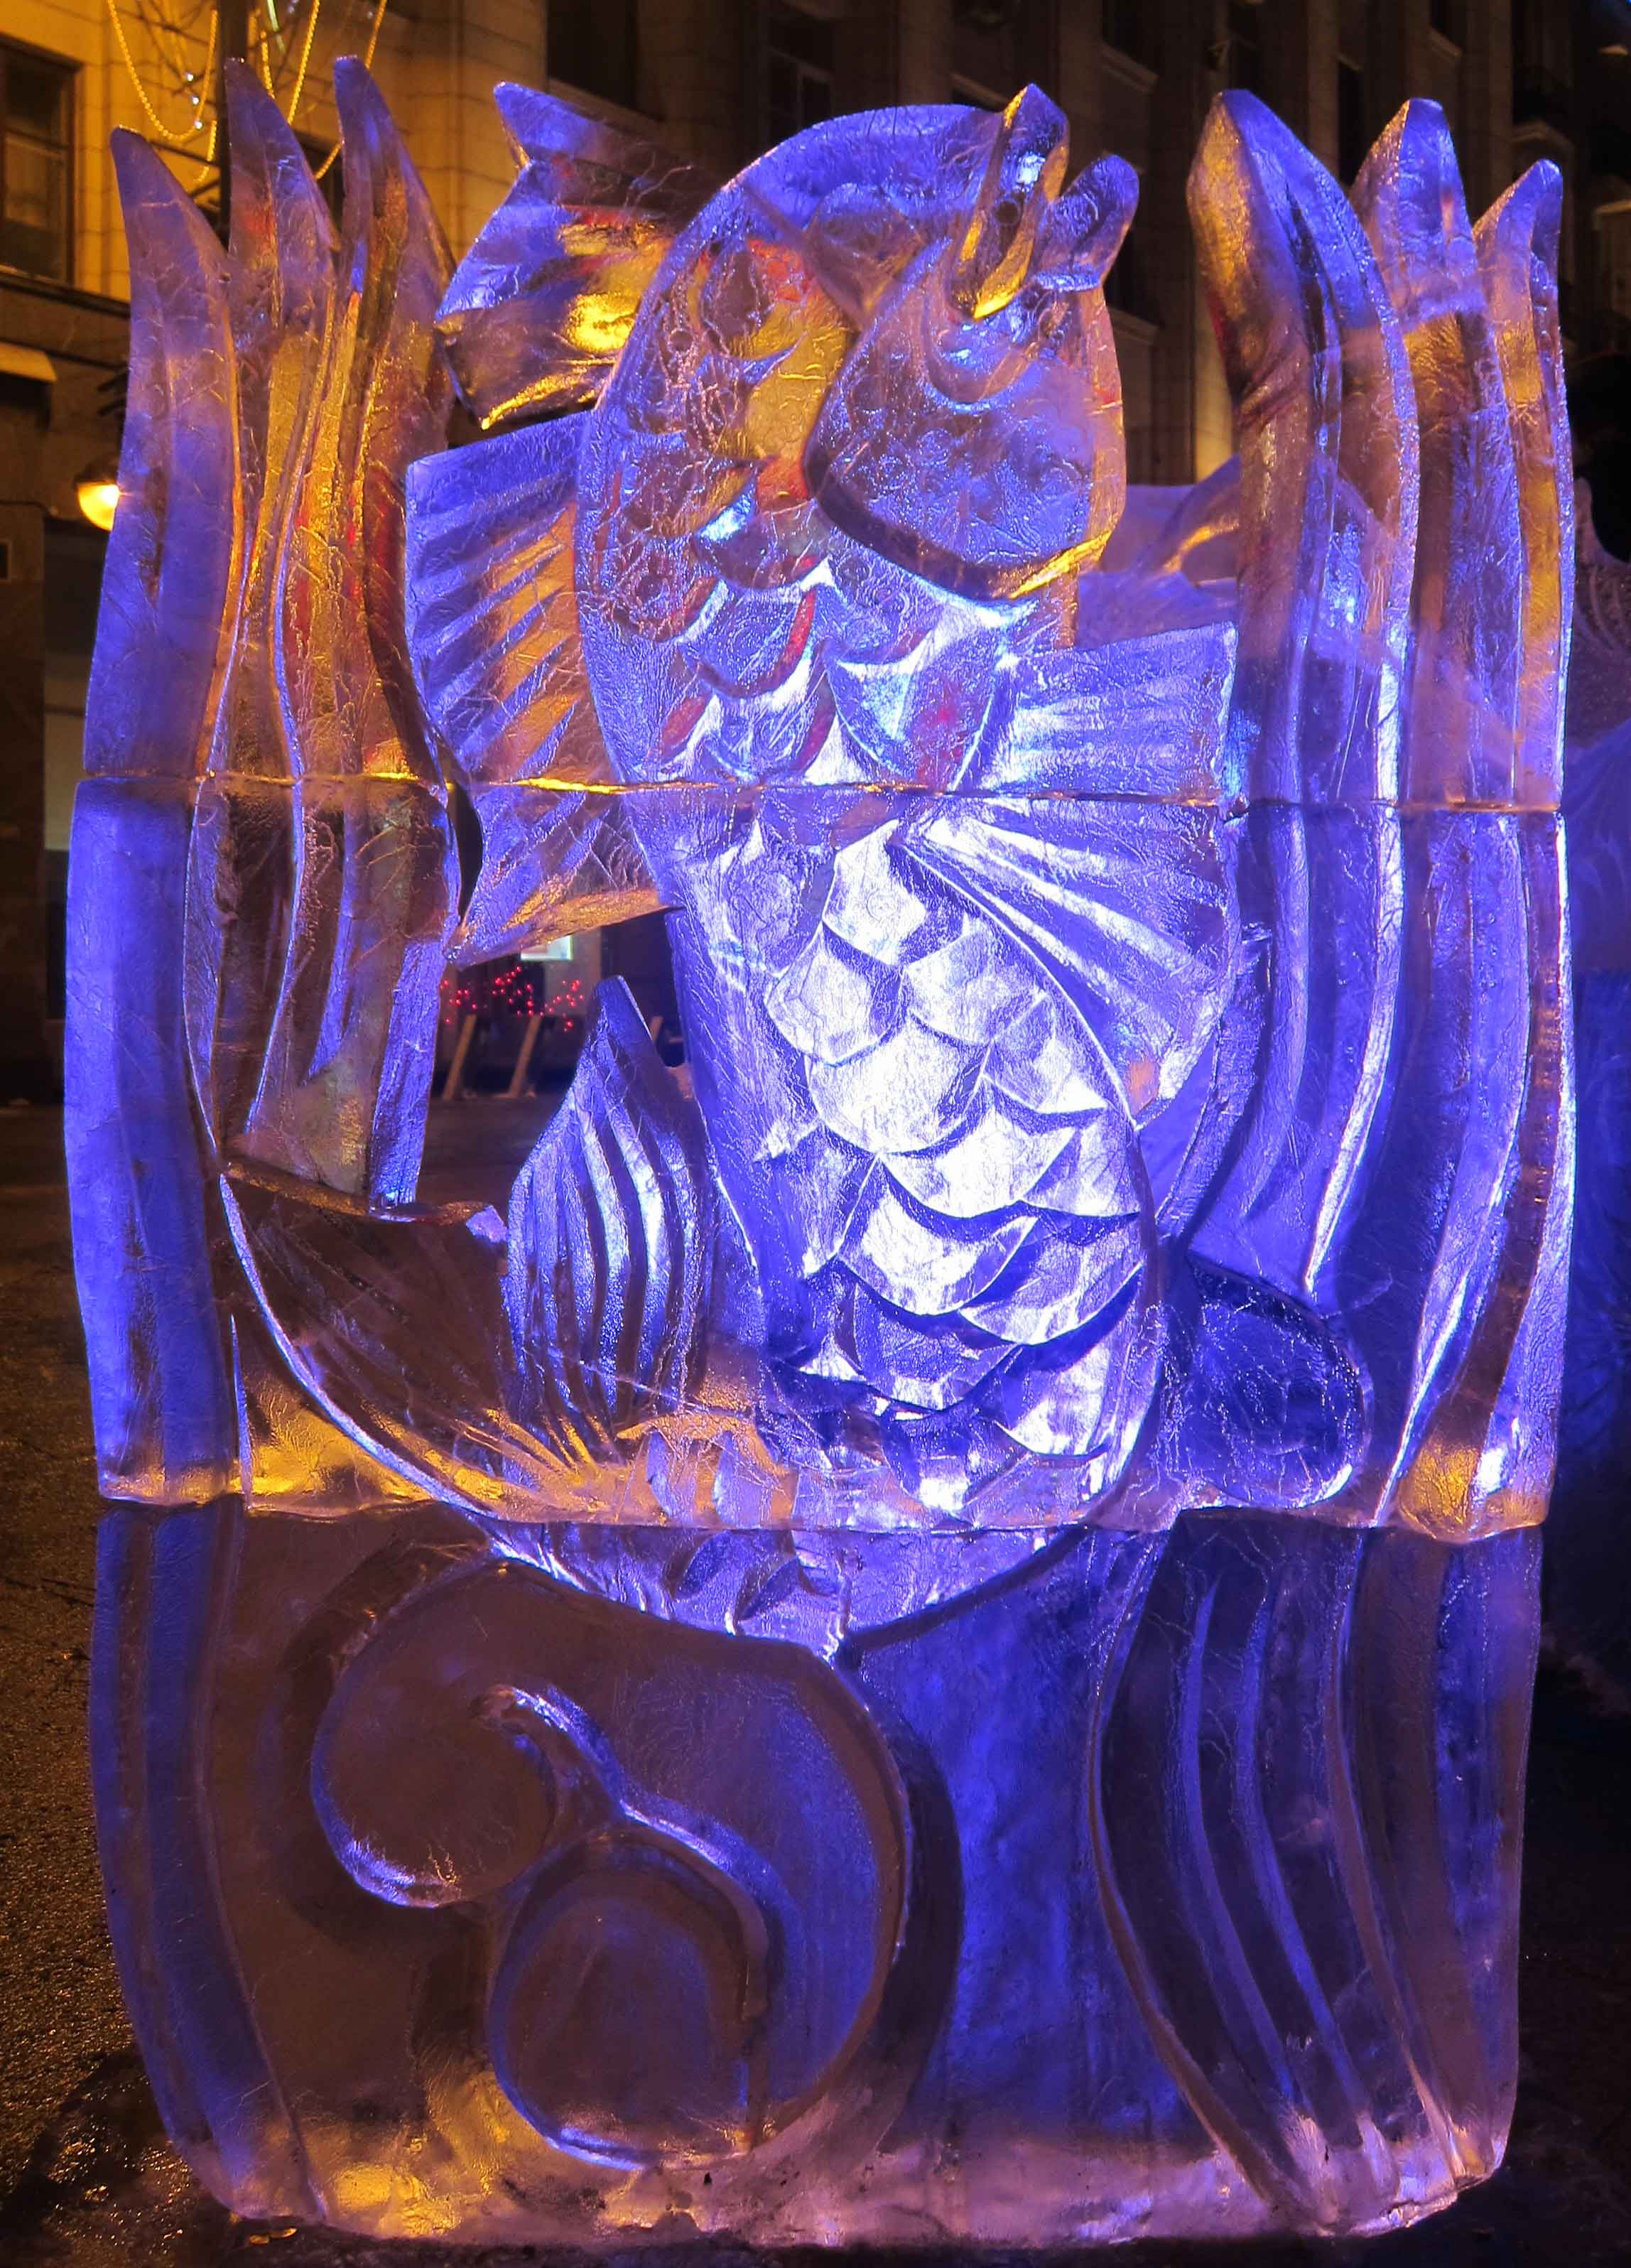 Sculptures de glace à Moscou: poisson enchanté